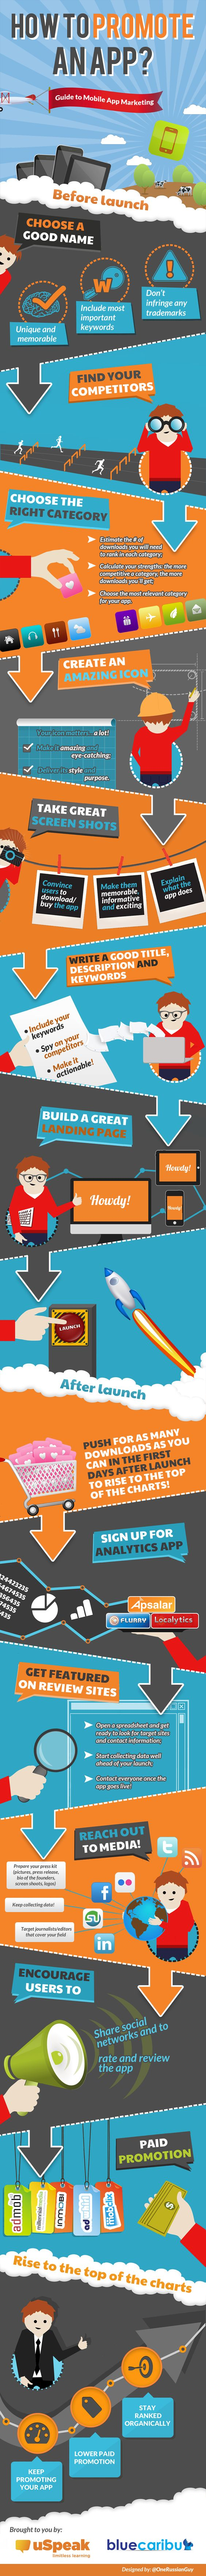 How To Promote Your App: Guide To Mobile Marketing #infographic